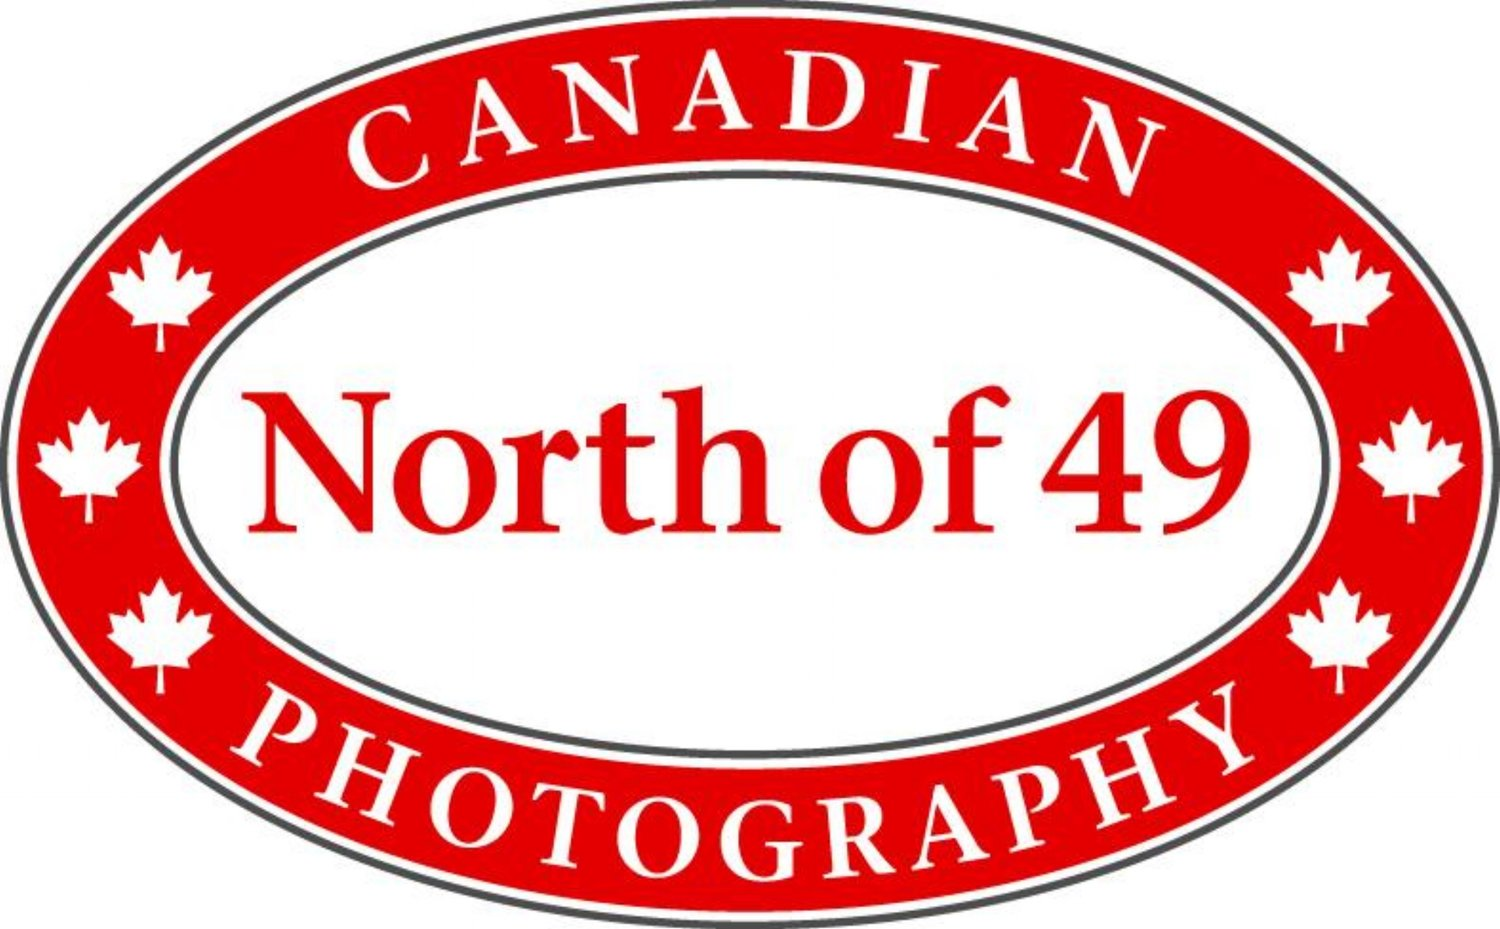 North of 49 Photography